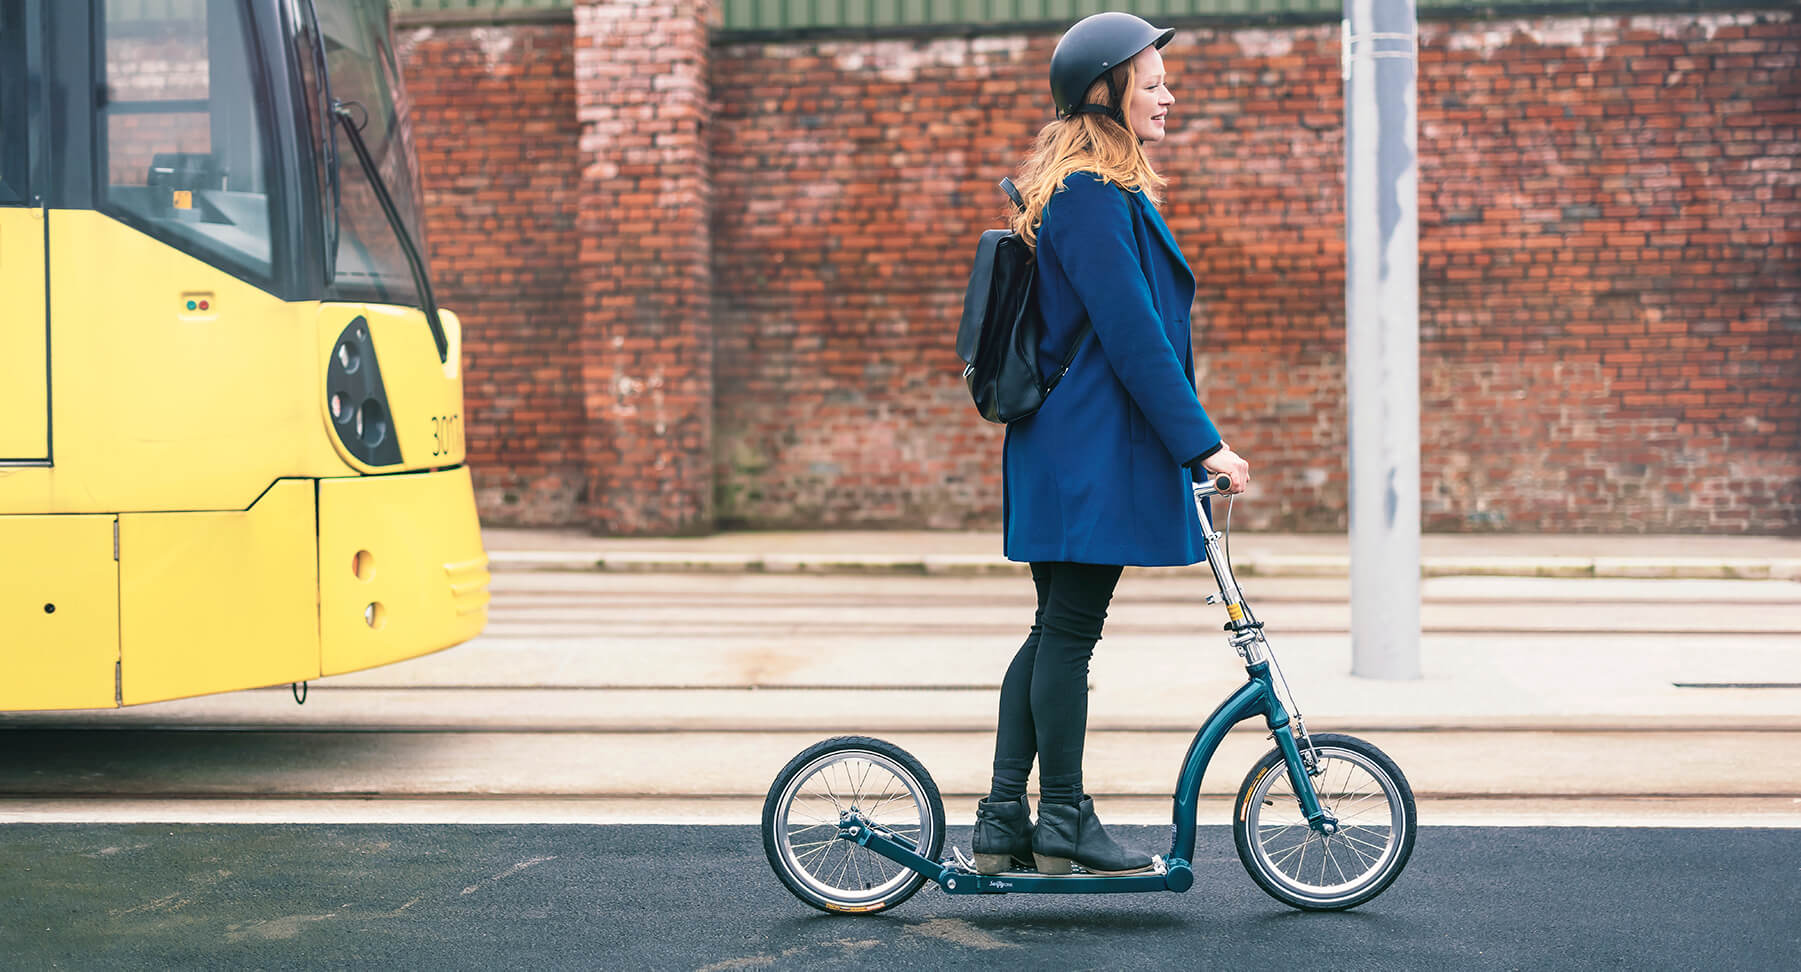 kick scooter for adults, scooter for adults, scooters for big adults